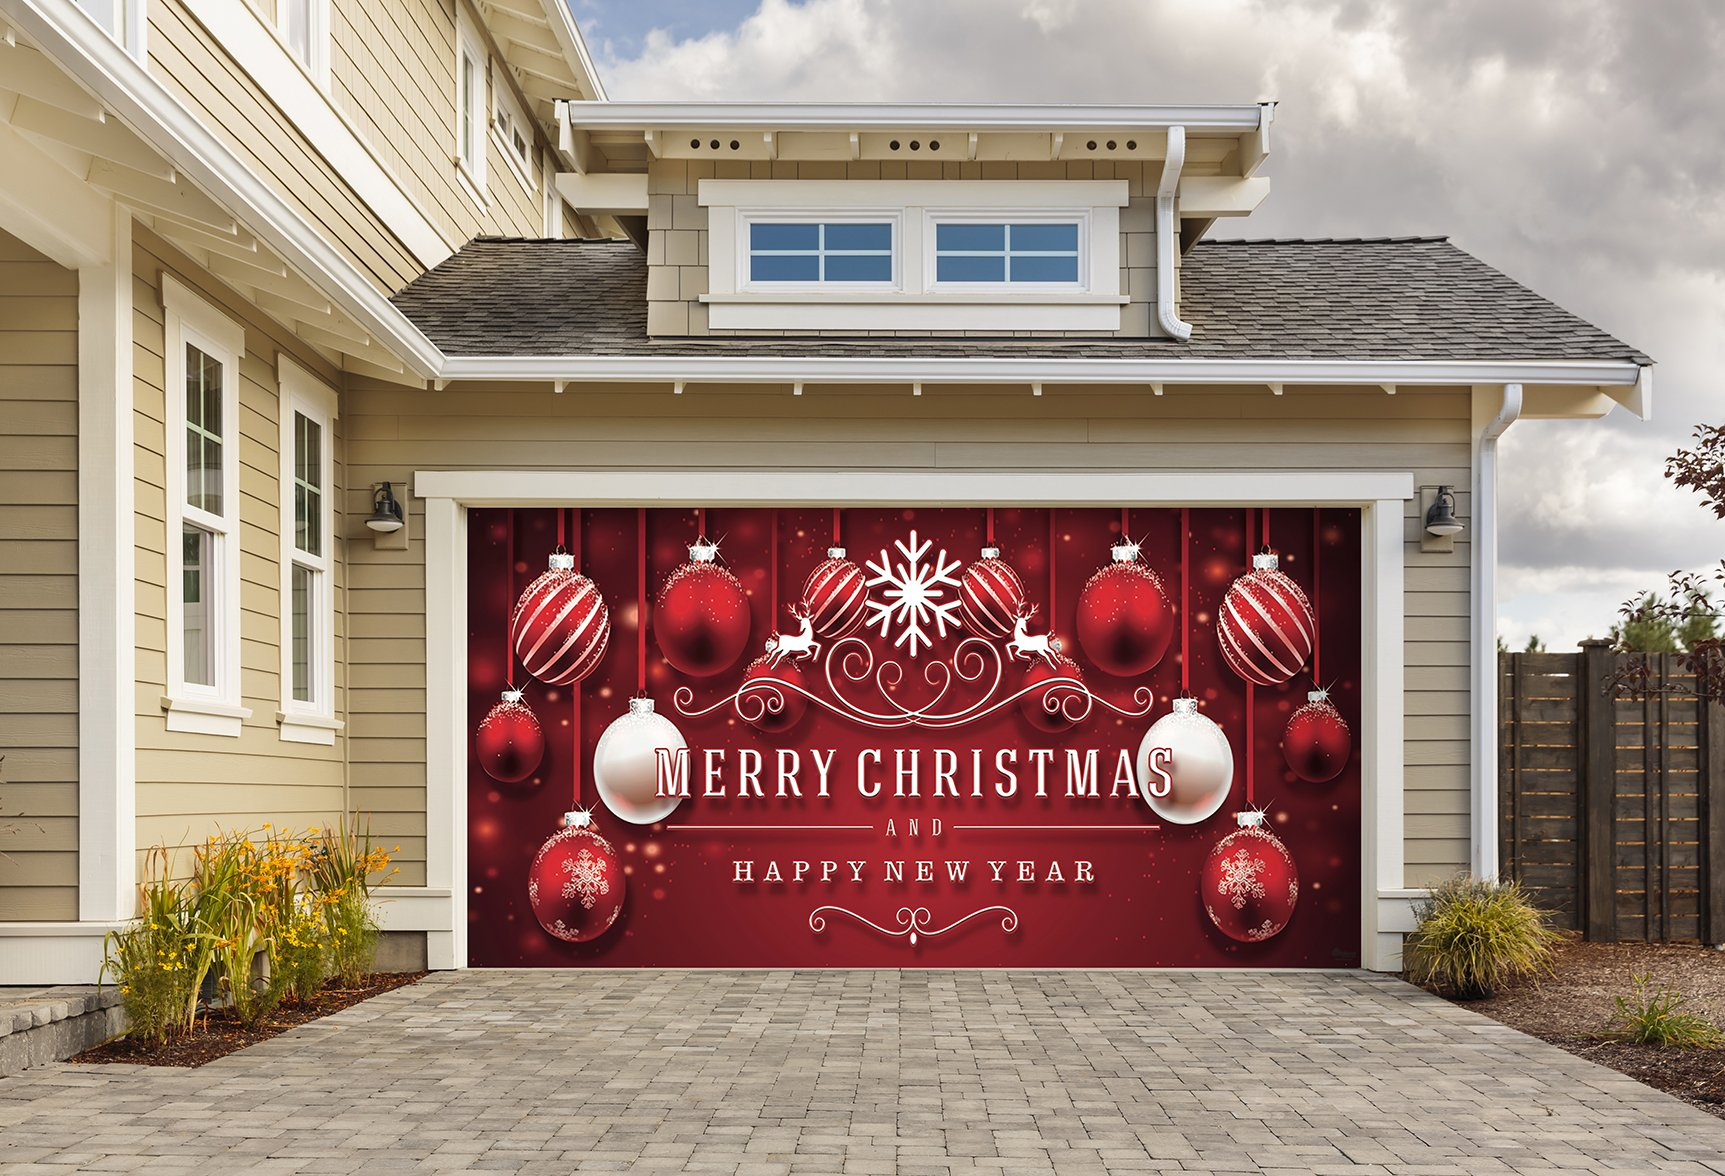 Outdoor Christmas Holiday Garage Door Banner Cover Mural Décoration 8'x16' - Red Ornaments in Snow Outdoor Christmas Holiday Garage Door Banner Décor Sign 8'x16' by Victory Corps